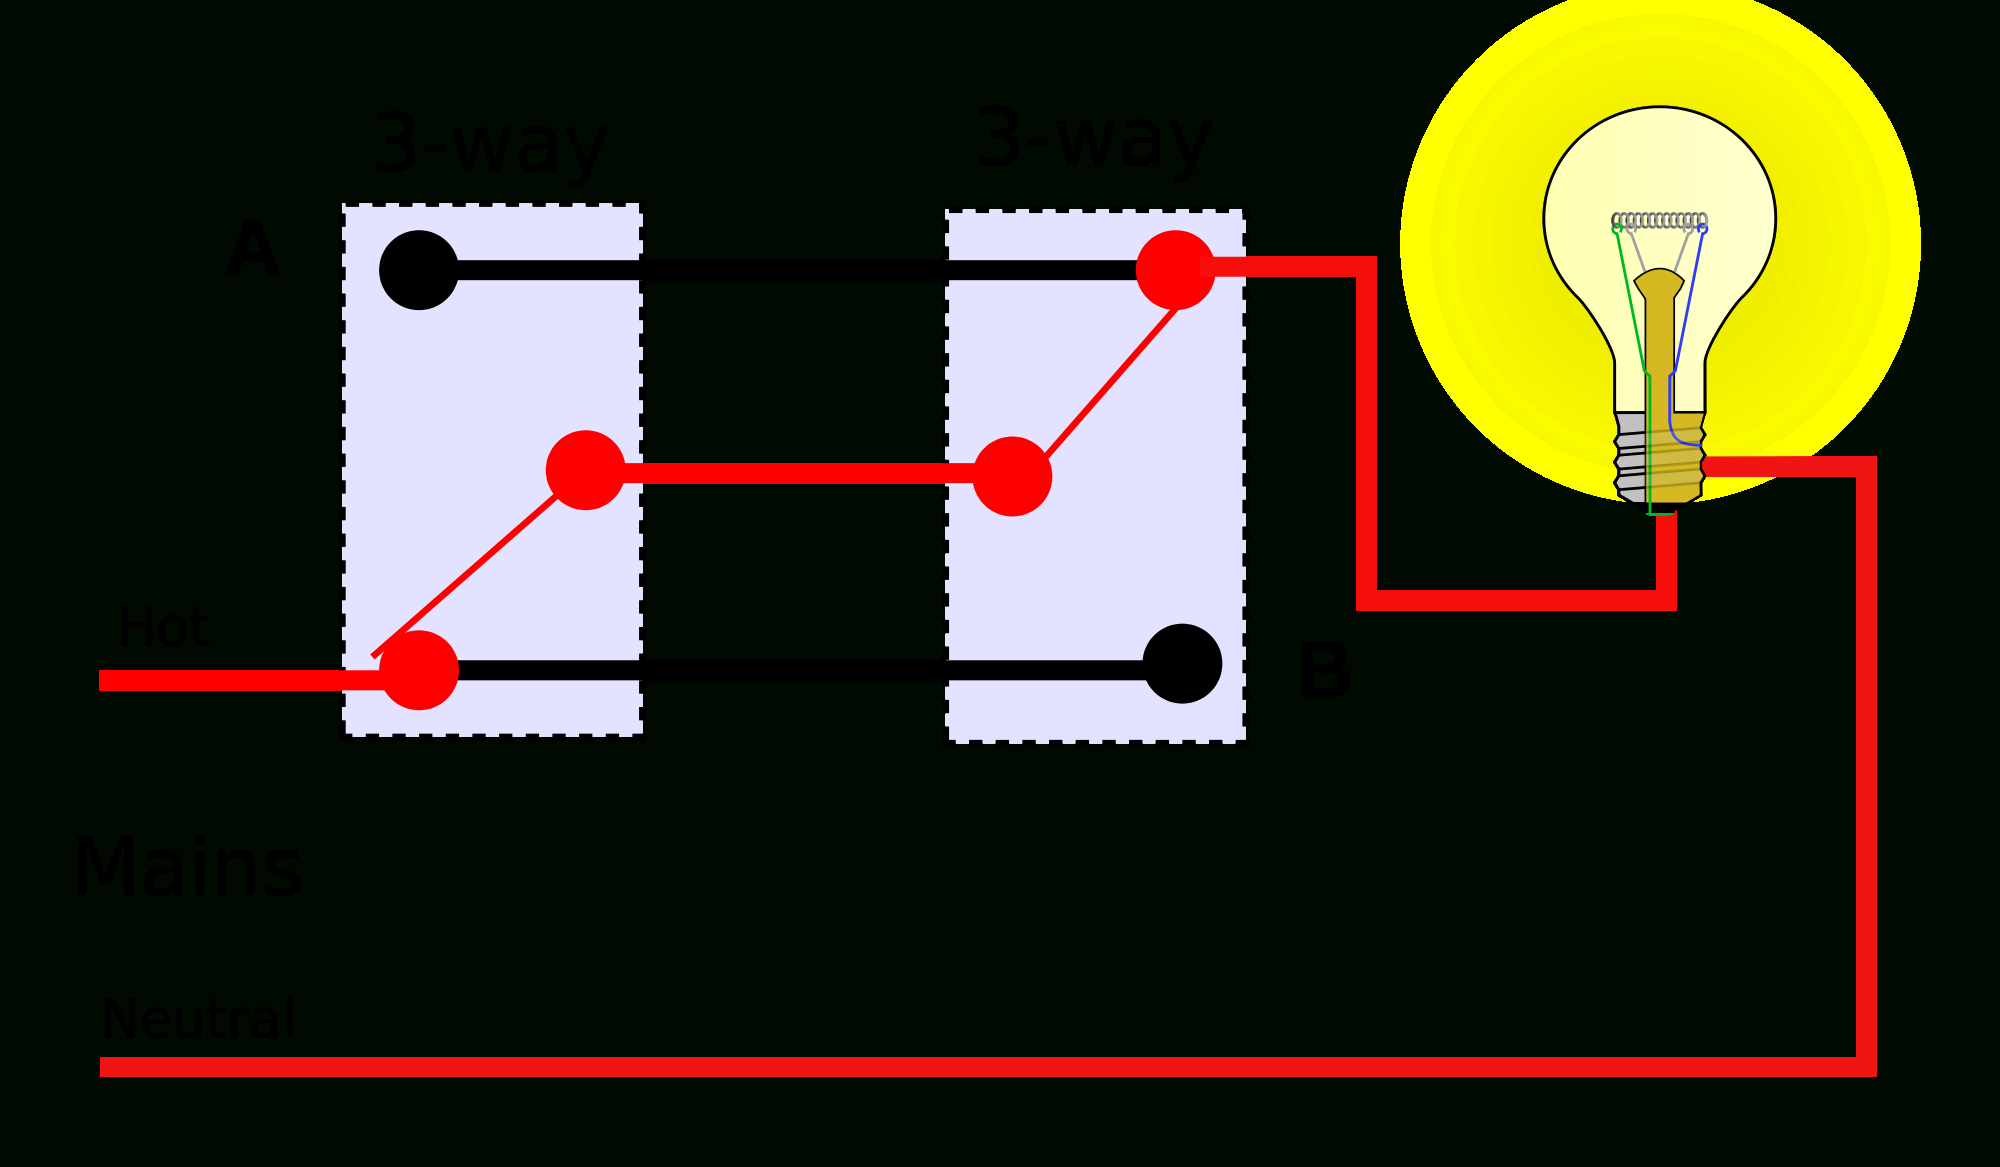 Electrical - Coast 3-Way -- Does This Conform With Code? - Home - 3 Way Lamp Switch Wiring Diagram